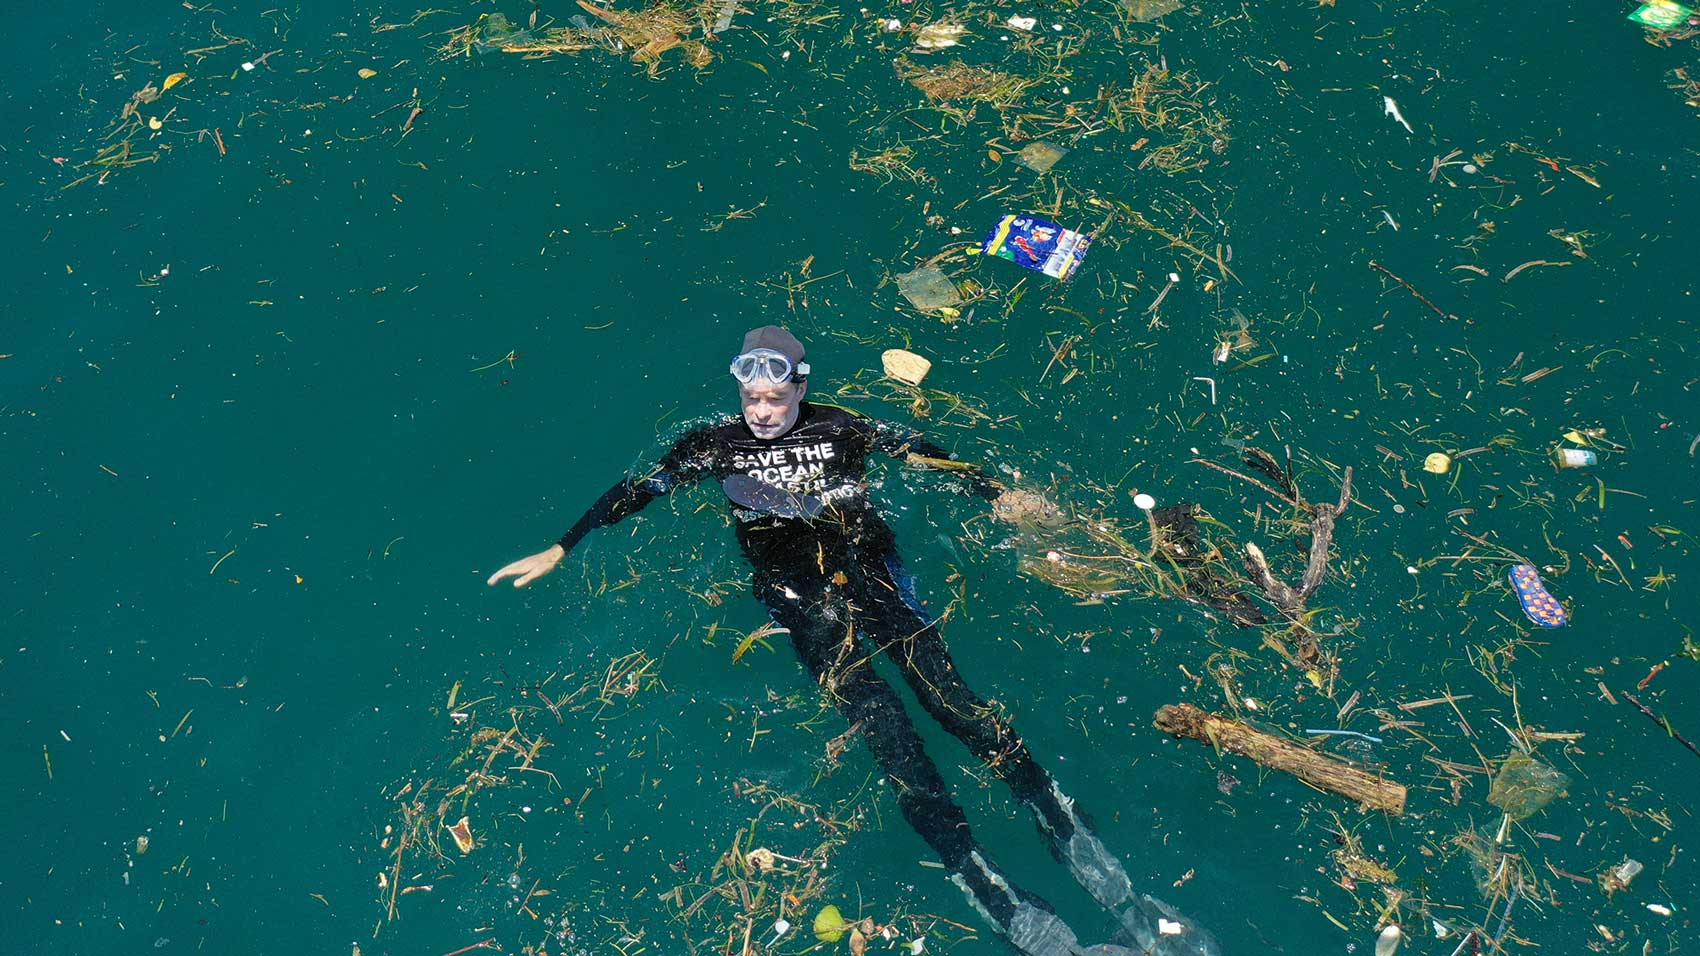 swimming in plastic ocean pollution